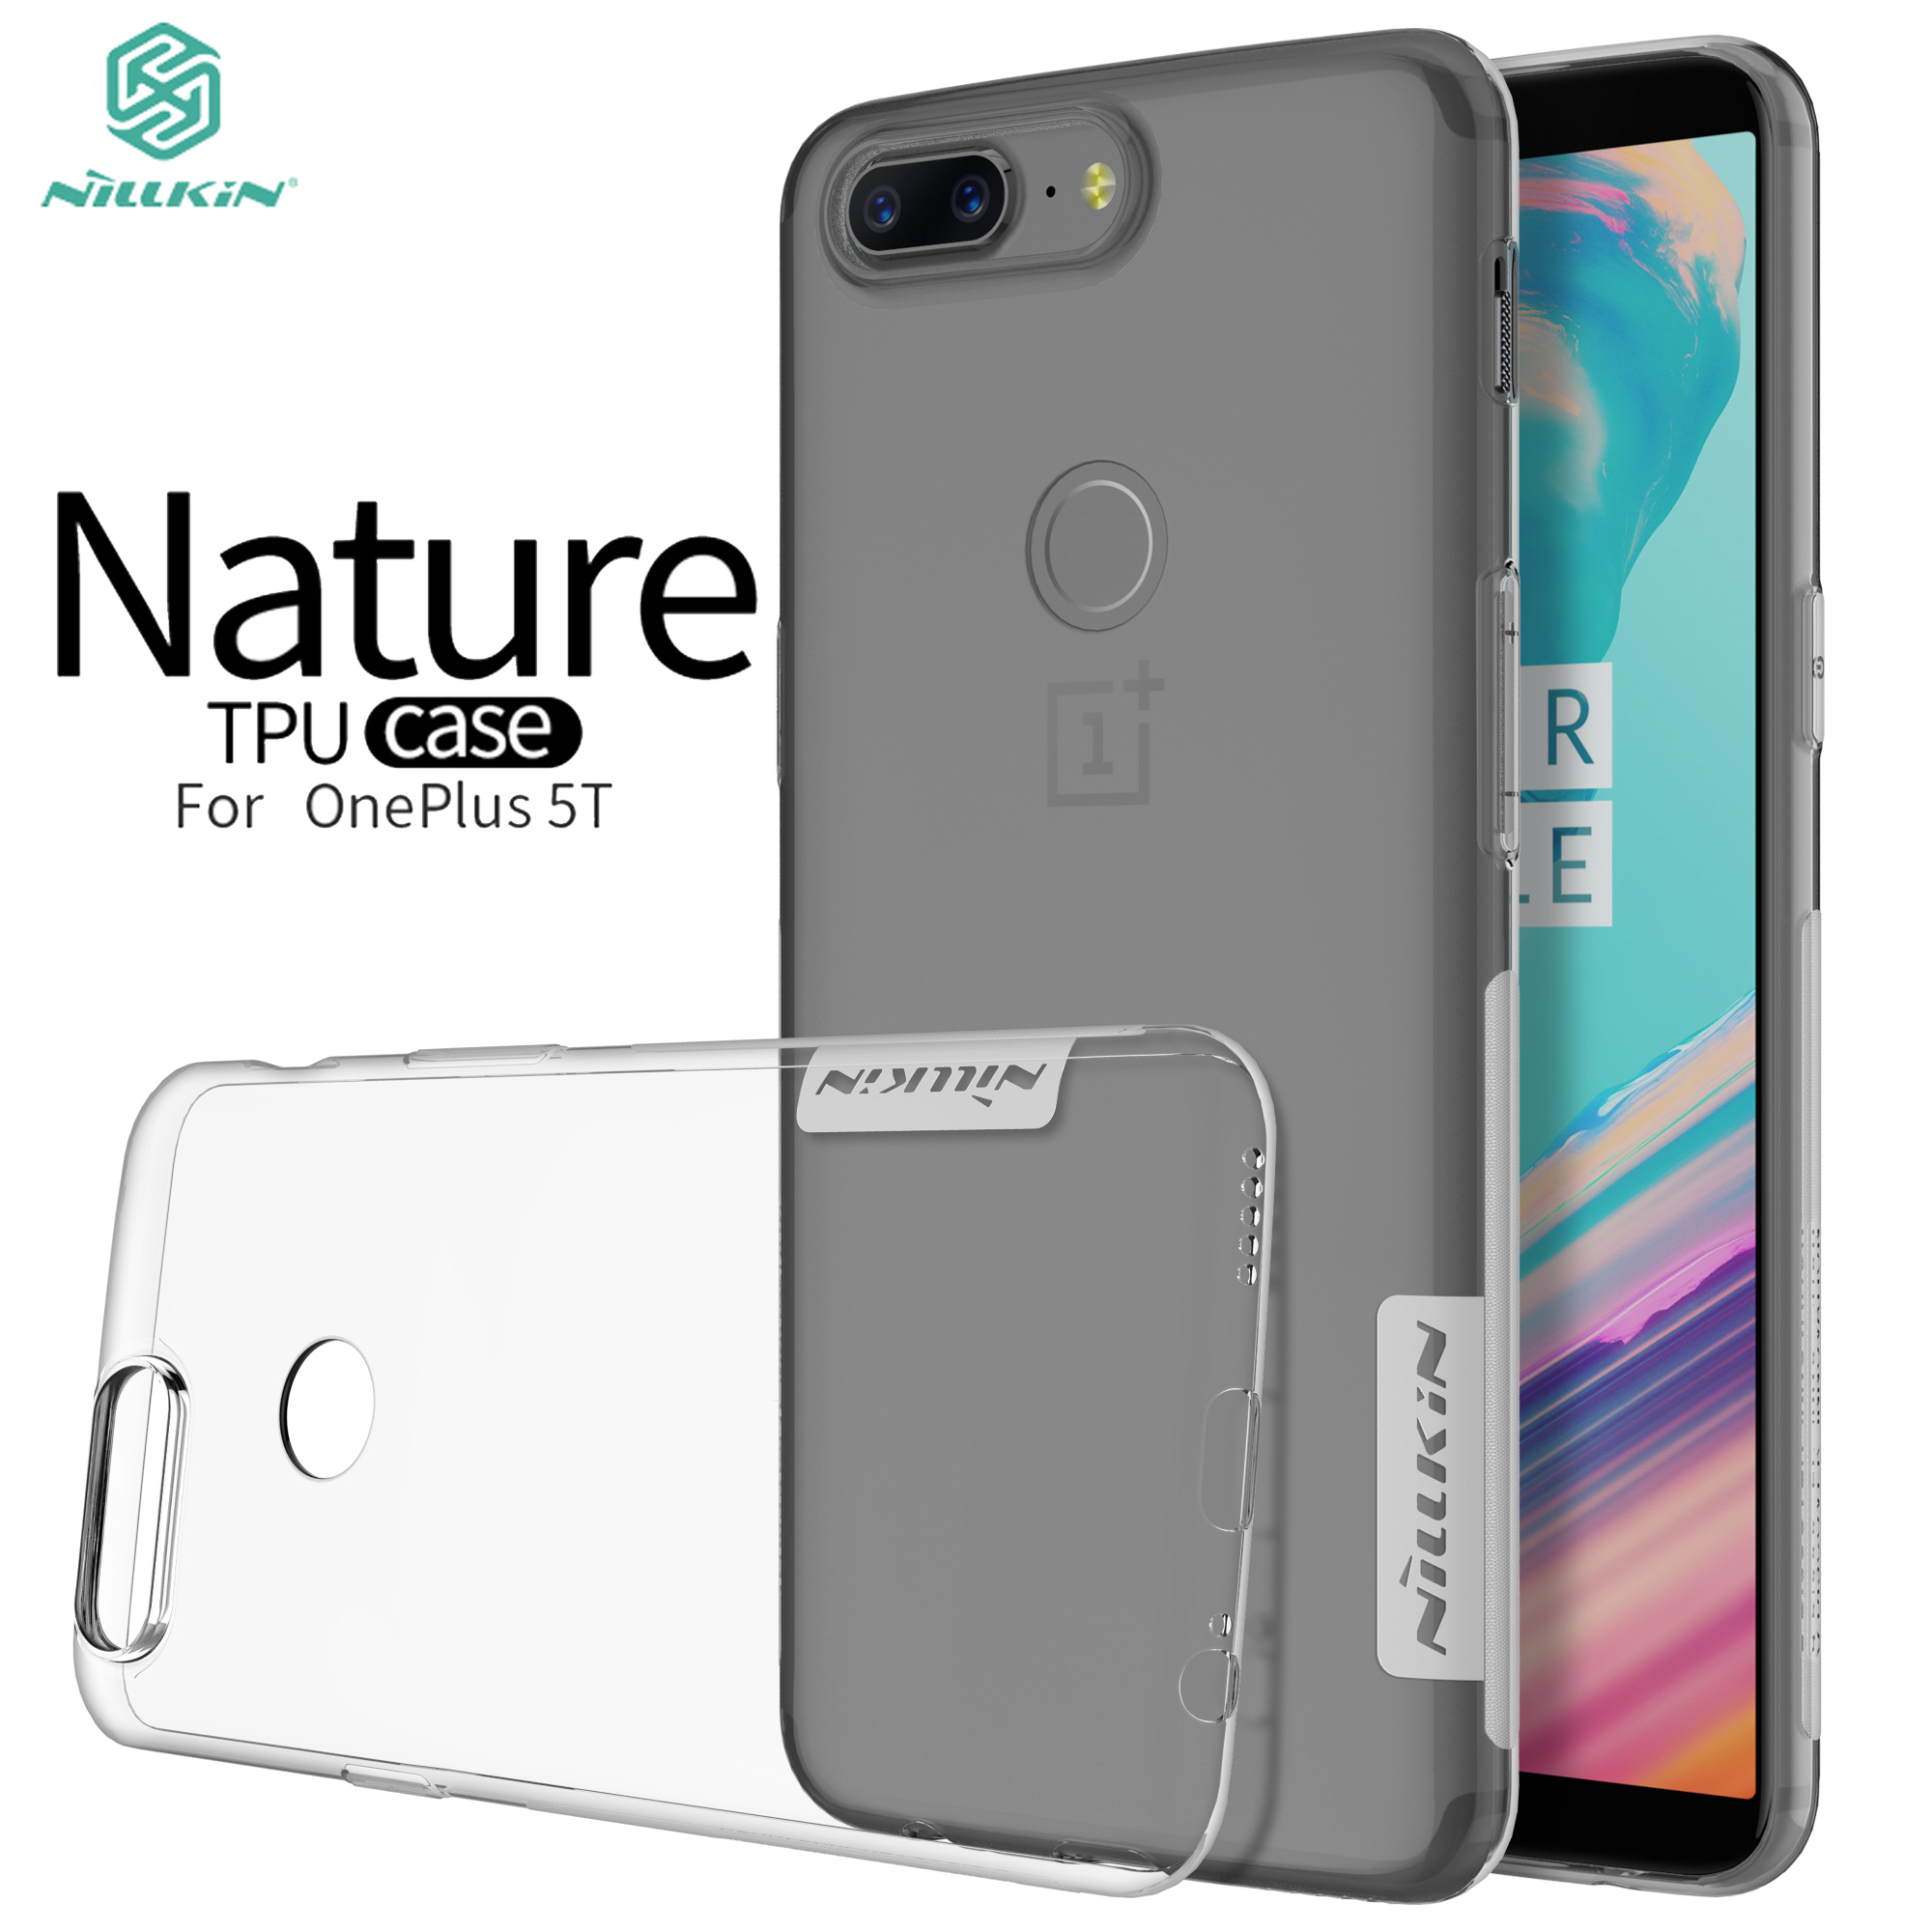 OnePlus 5T Case OnePlus 5T TPU Case Nillkin Nature Series Transparent Clear Soft Silicon Case For OnePlus 5T A5010